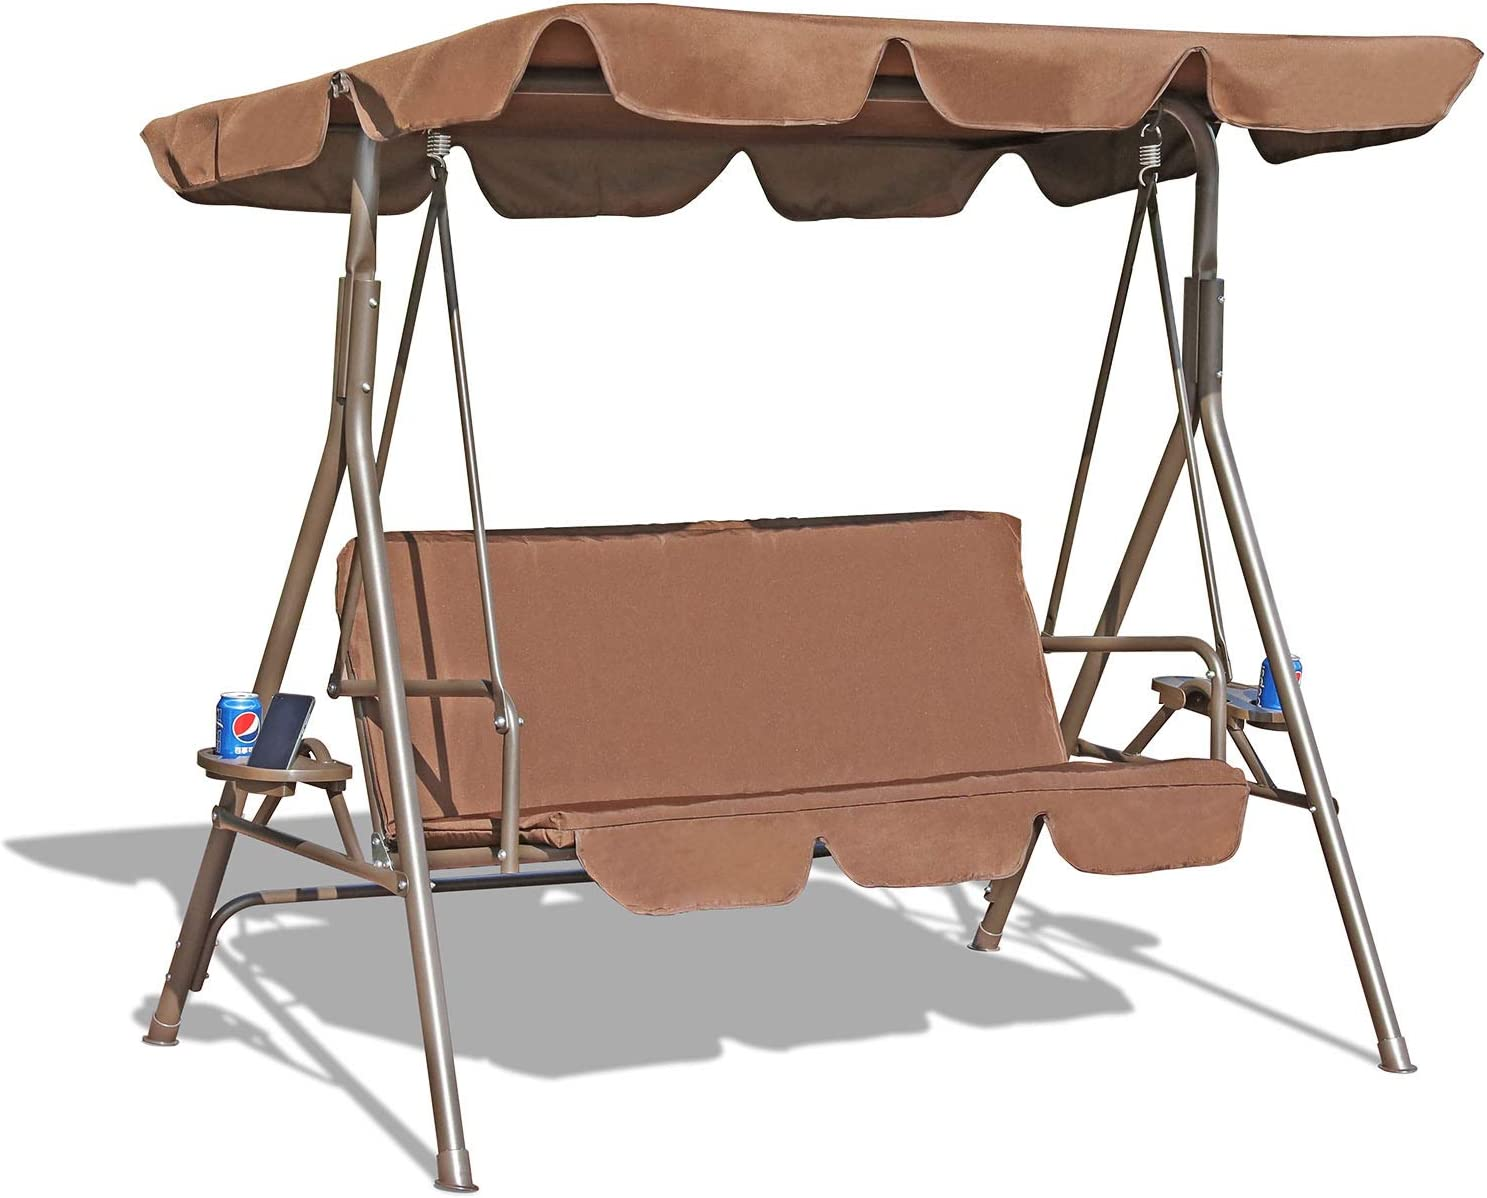 GOLDSUN Durable 3 Person Outdoor Patio Swing with Teapoys Weather Resistant Canopy Steel Frame and Removable Cushion for Balcony,Garden, Porch,Deck and Poolside(Coffee)